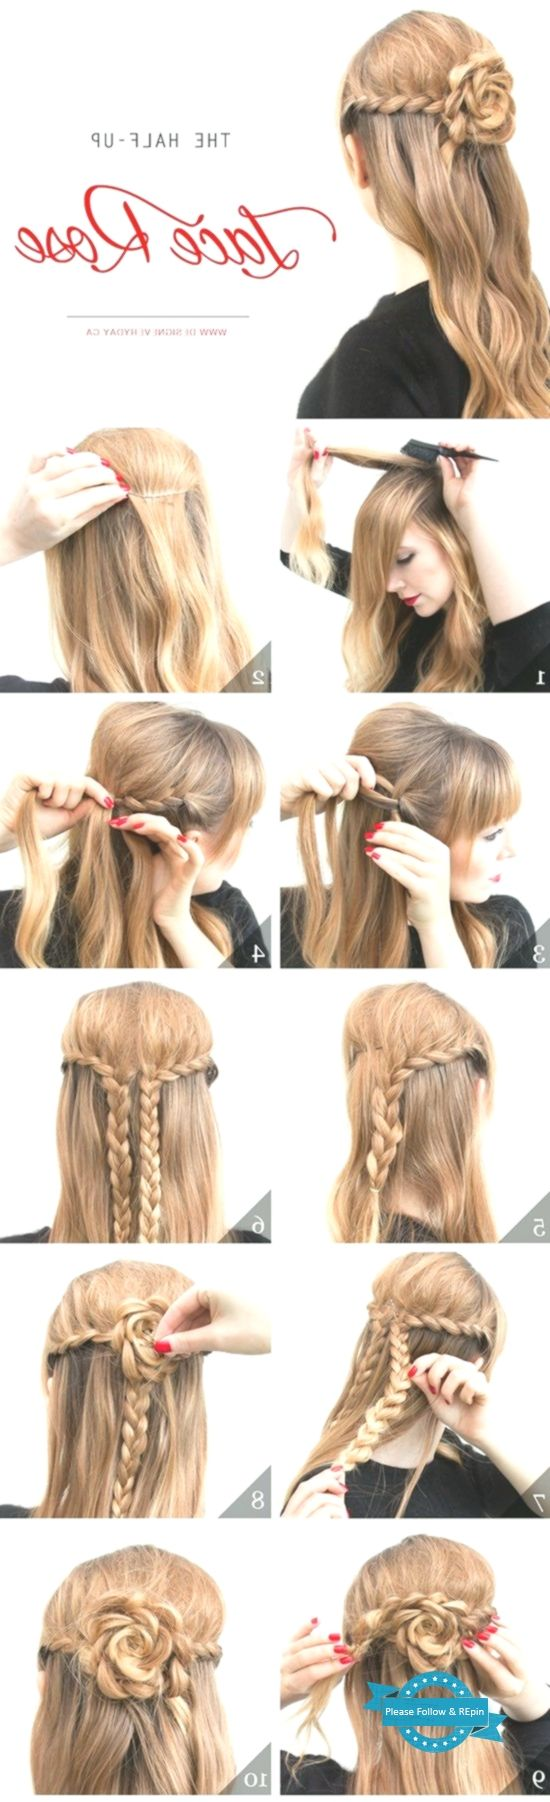 The Half-Up Lace Rose | Easy hairstyles, Hair styles, Diy hairstyles easy